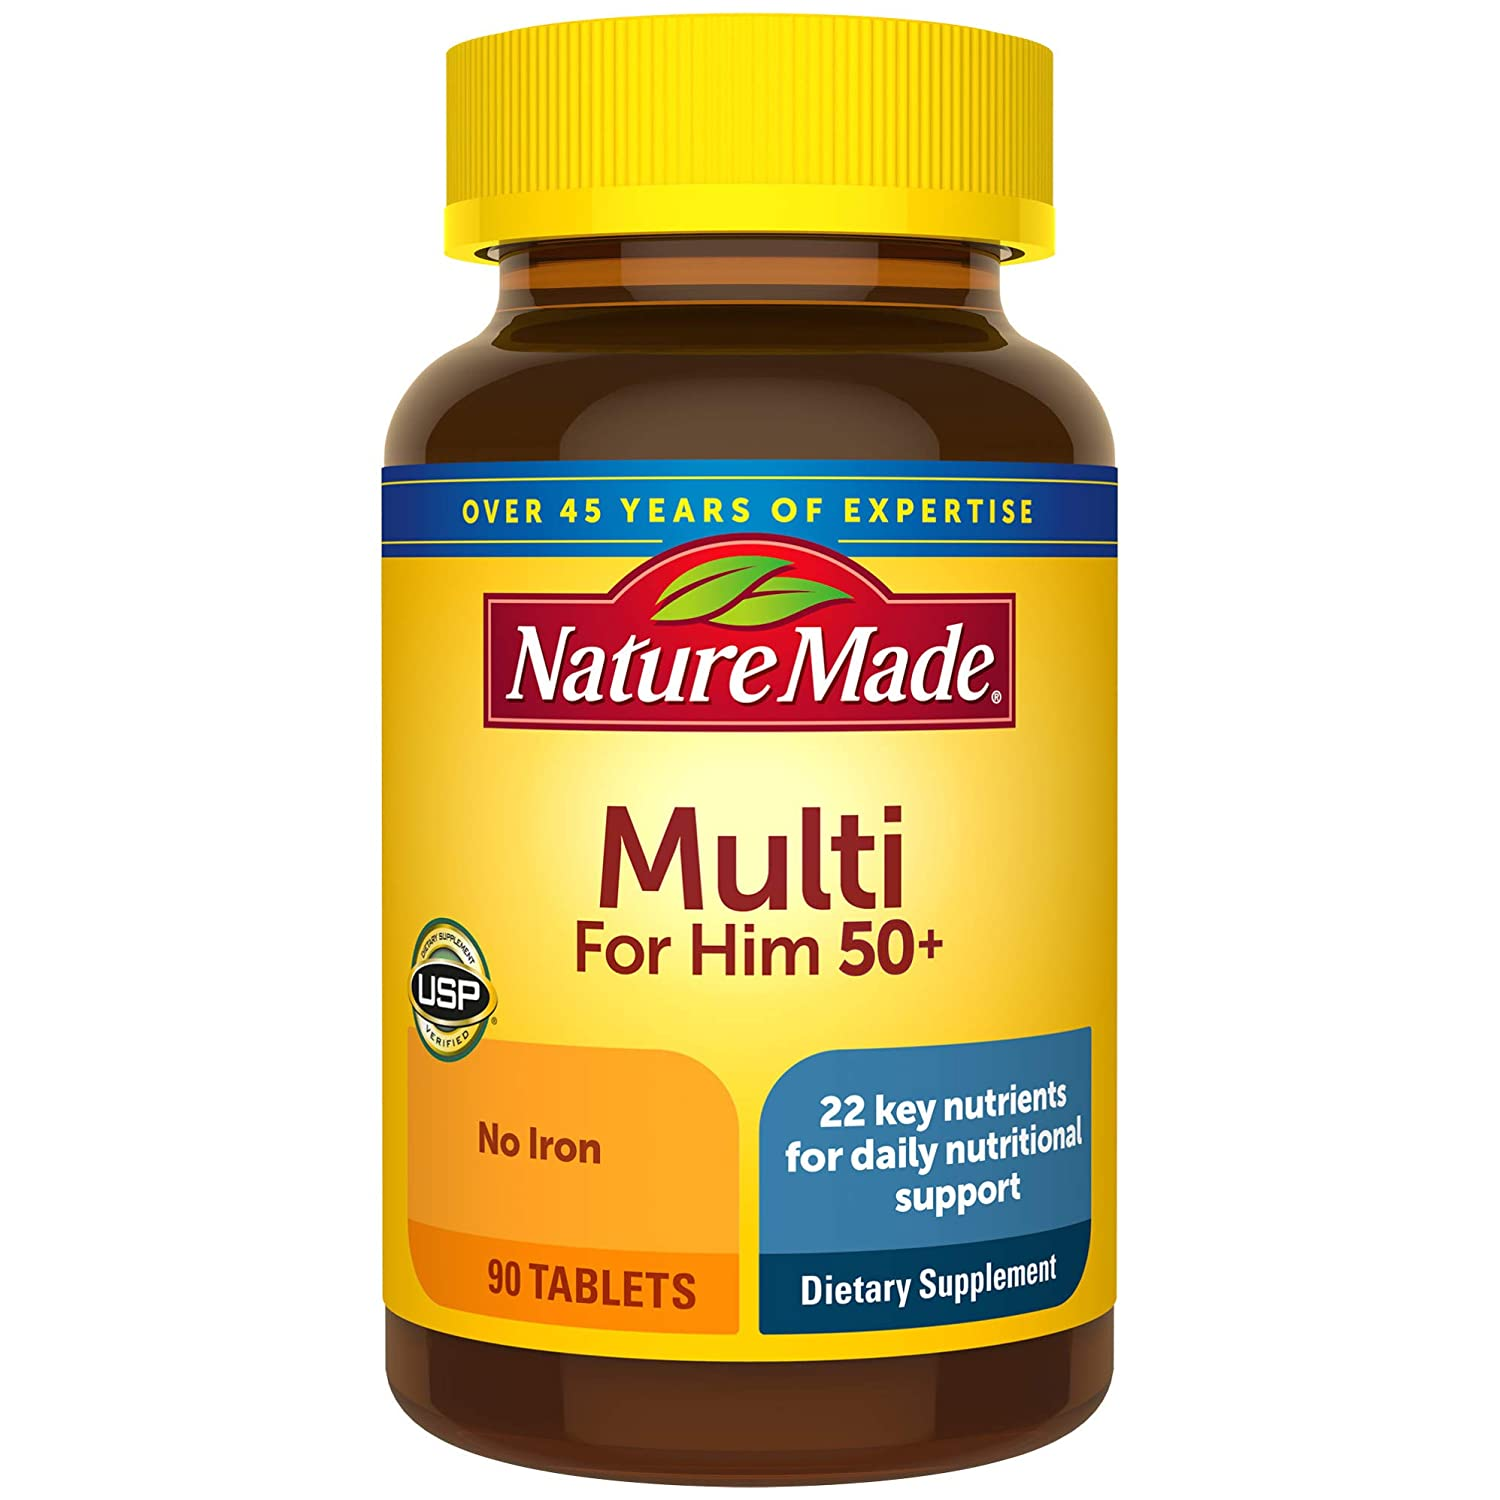 Nature Made Men's Multivitamin 50+ Tablets, 90 Count for Daily Nutritional Support